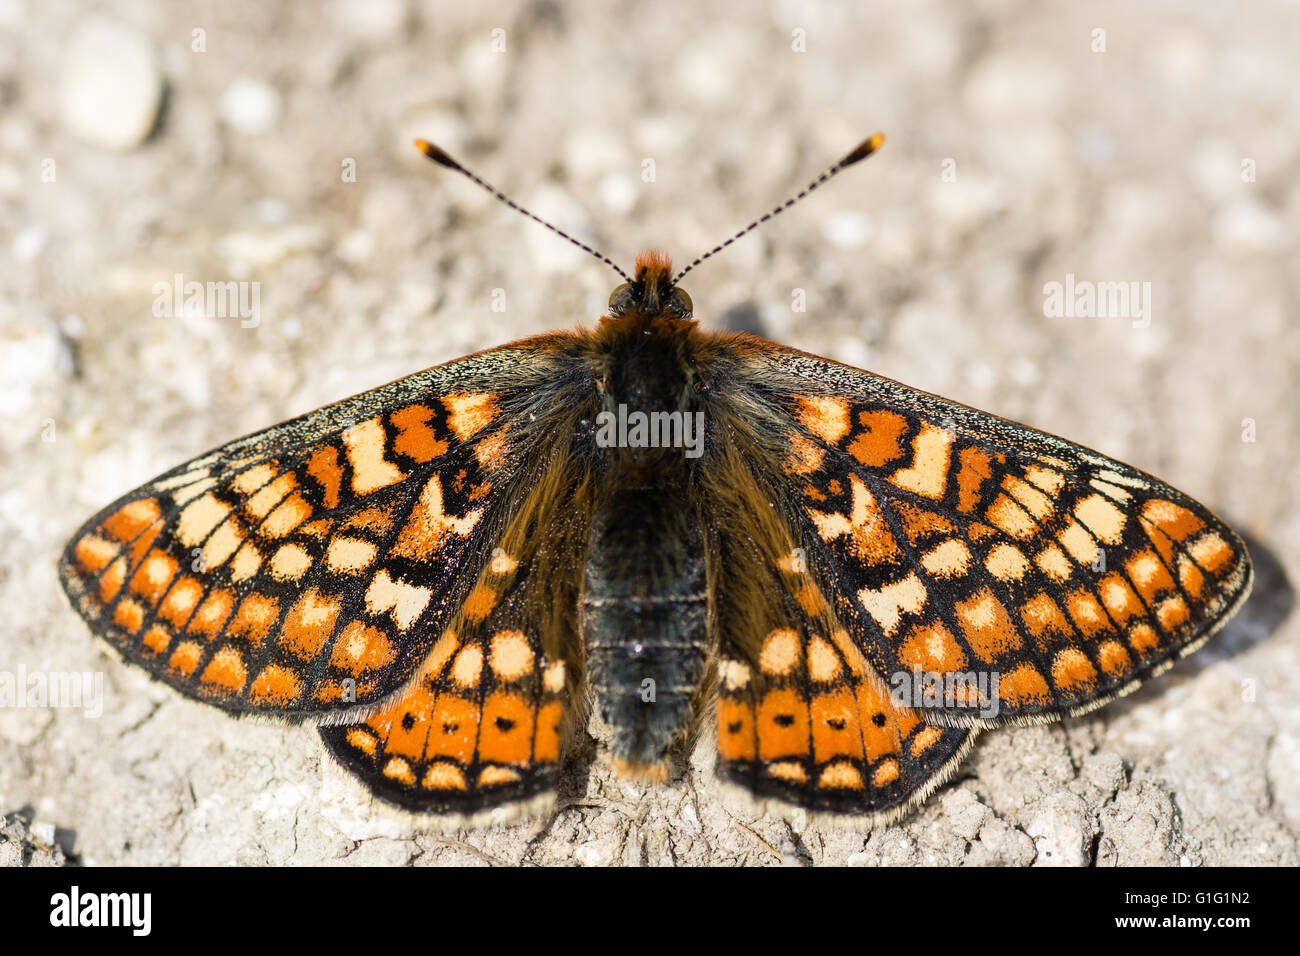 Marsh fritillary butterfly (Euphydryas aurinia) from above. A scarce butterfly in the family Nymphalidae, at rest - Stock Image